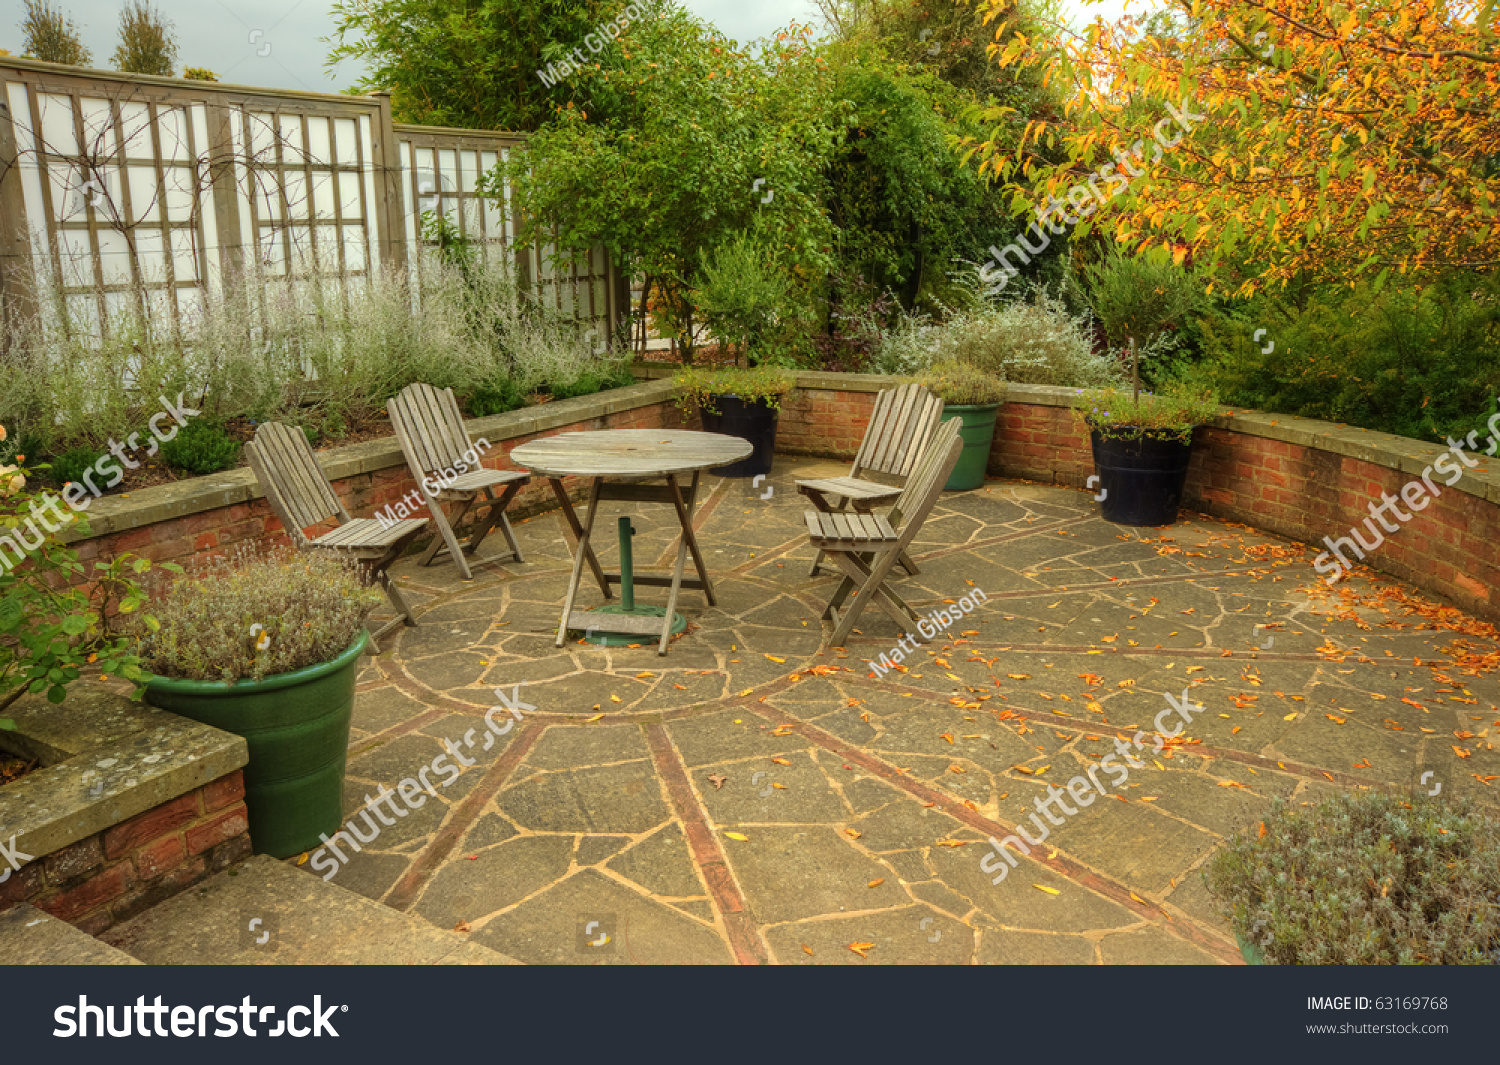 Peaceful Inviting Image English Country Garden Stock Photo (Safe to ...